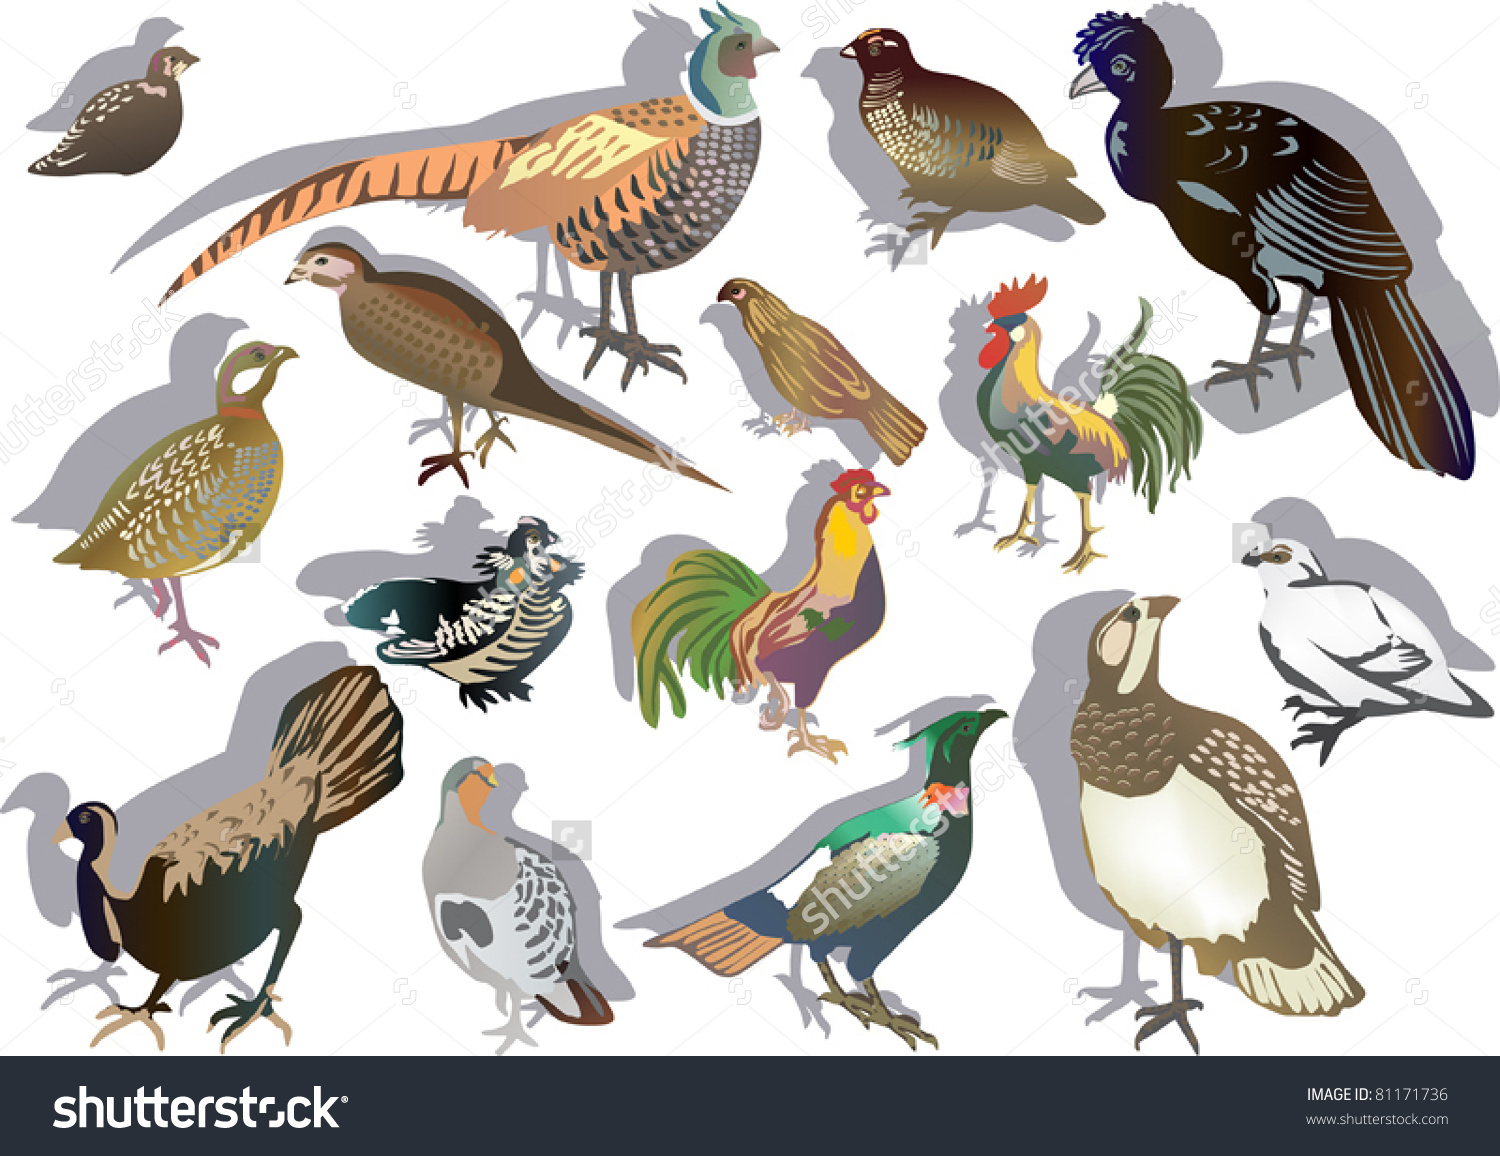 Illustration Gallinaceous Birds Isolated On White Stock Vector.